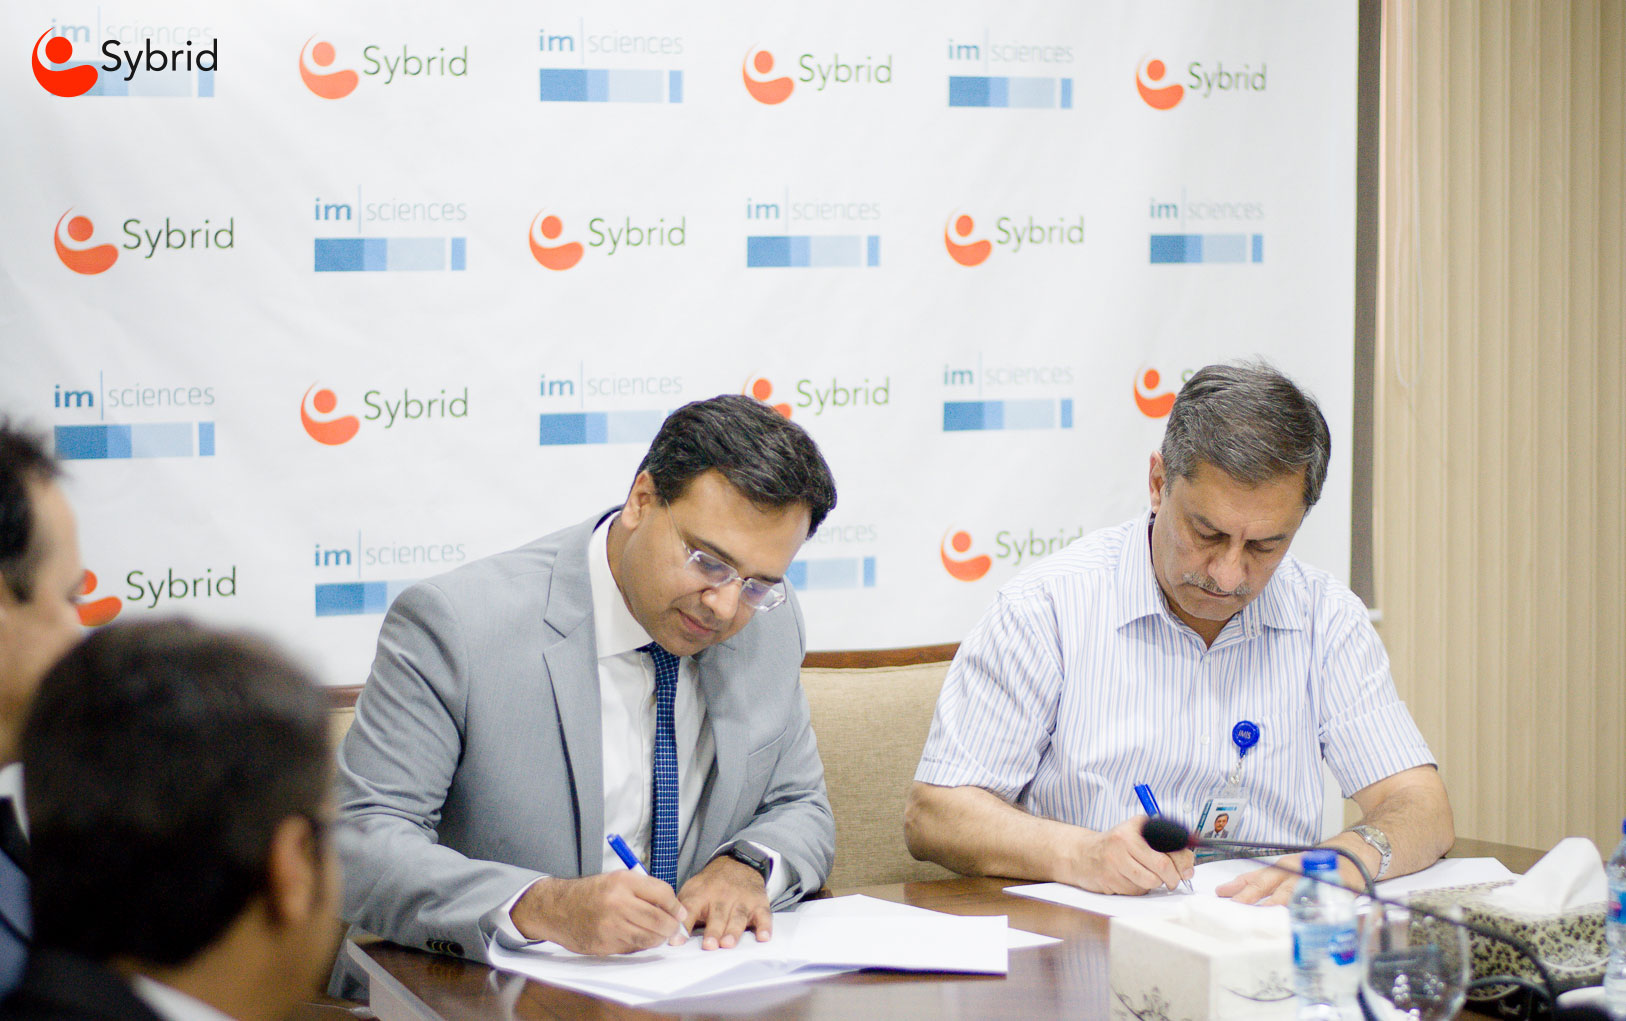 Sybrid signs MoU with IMSciences